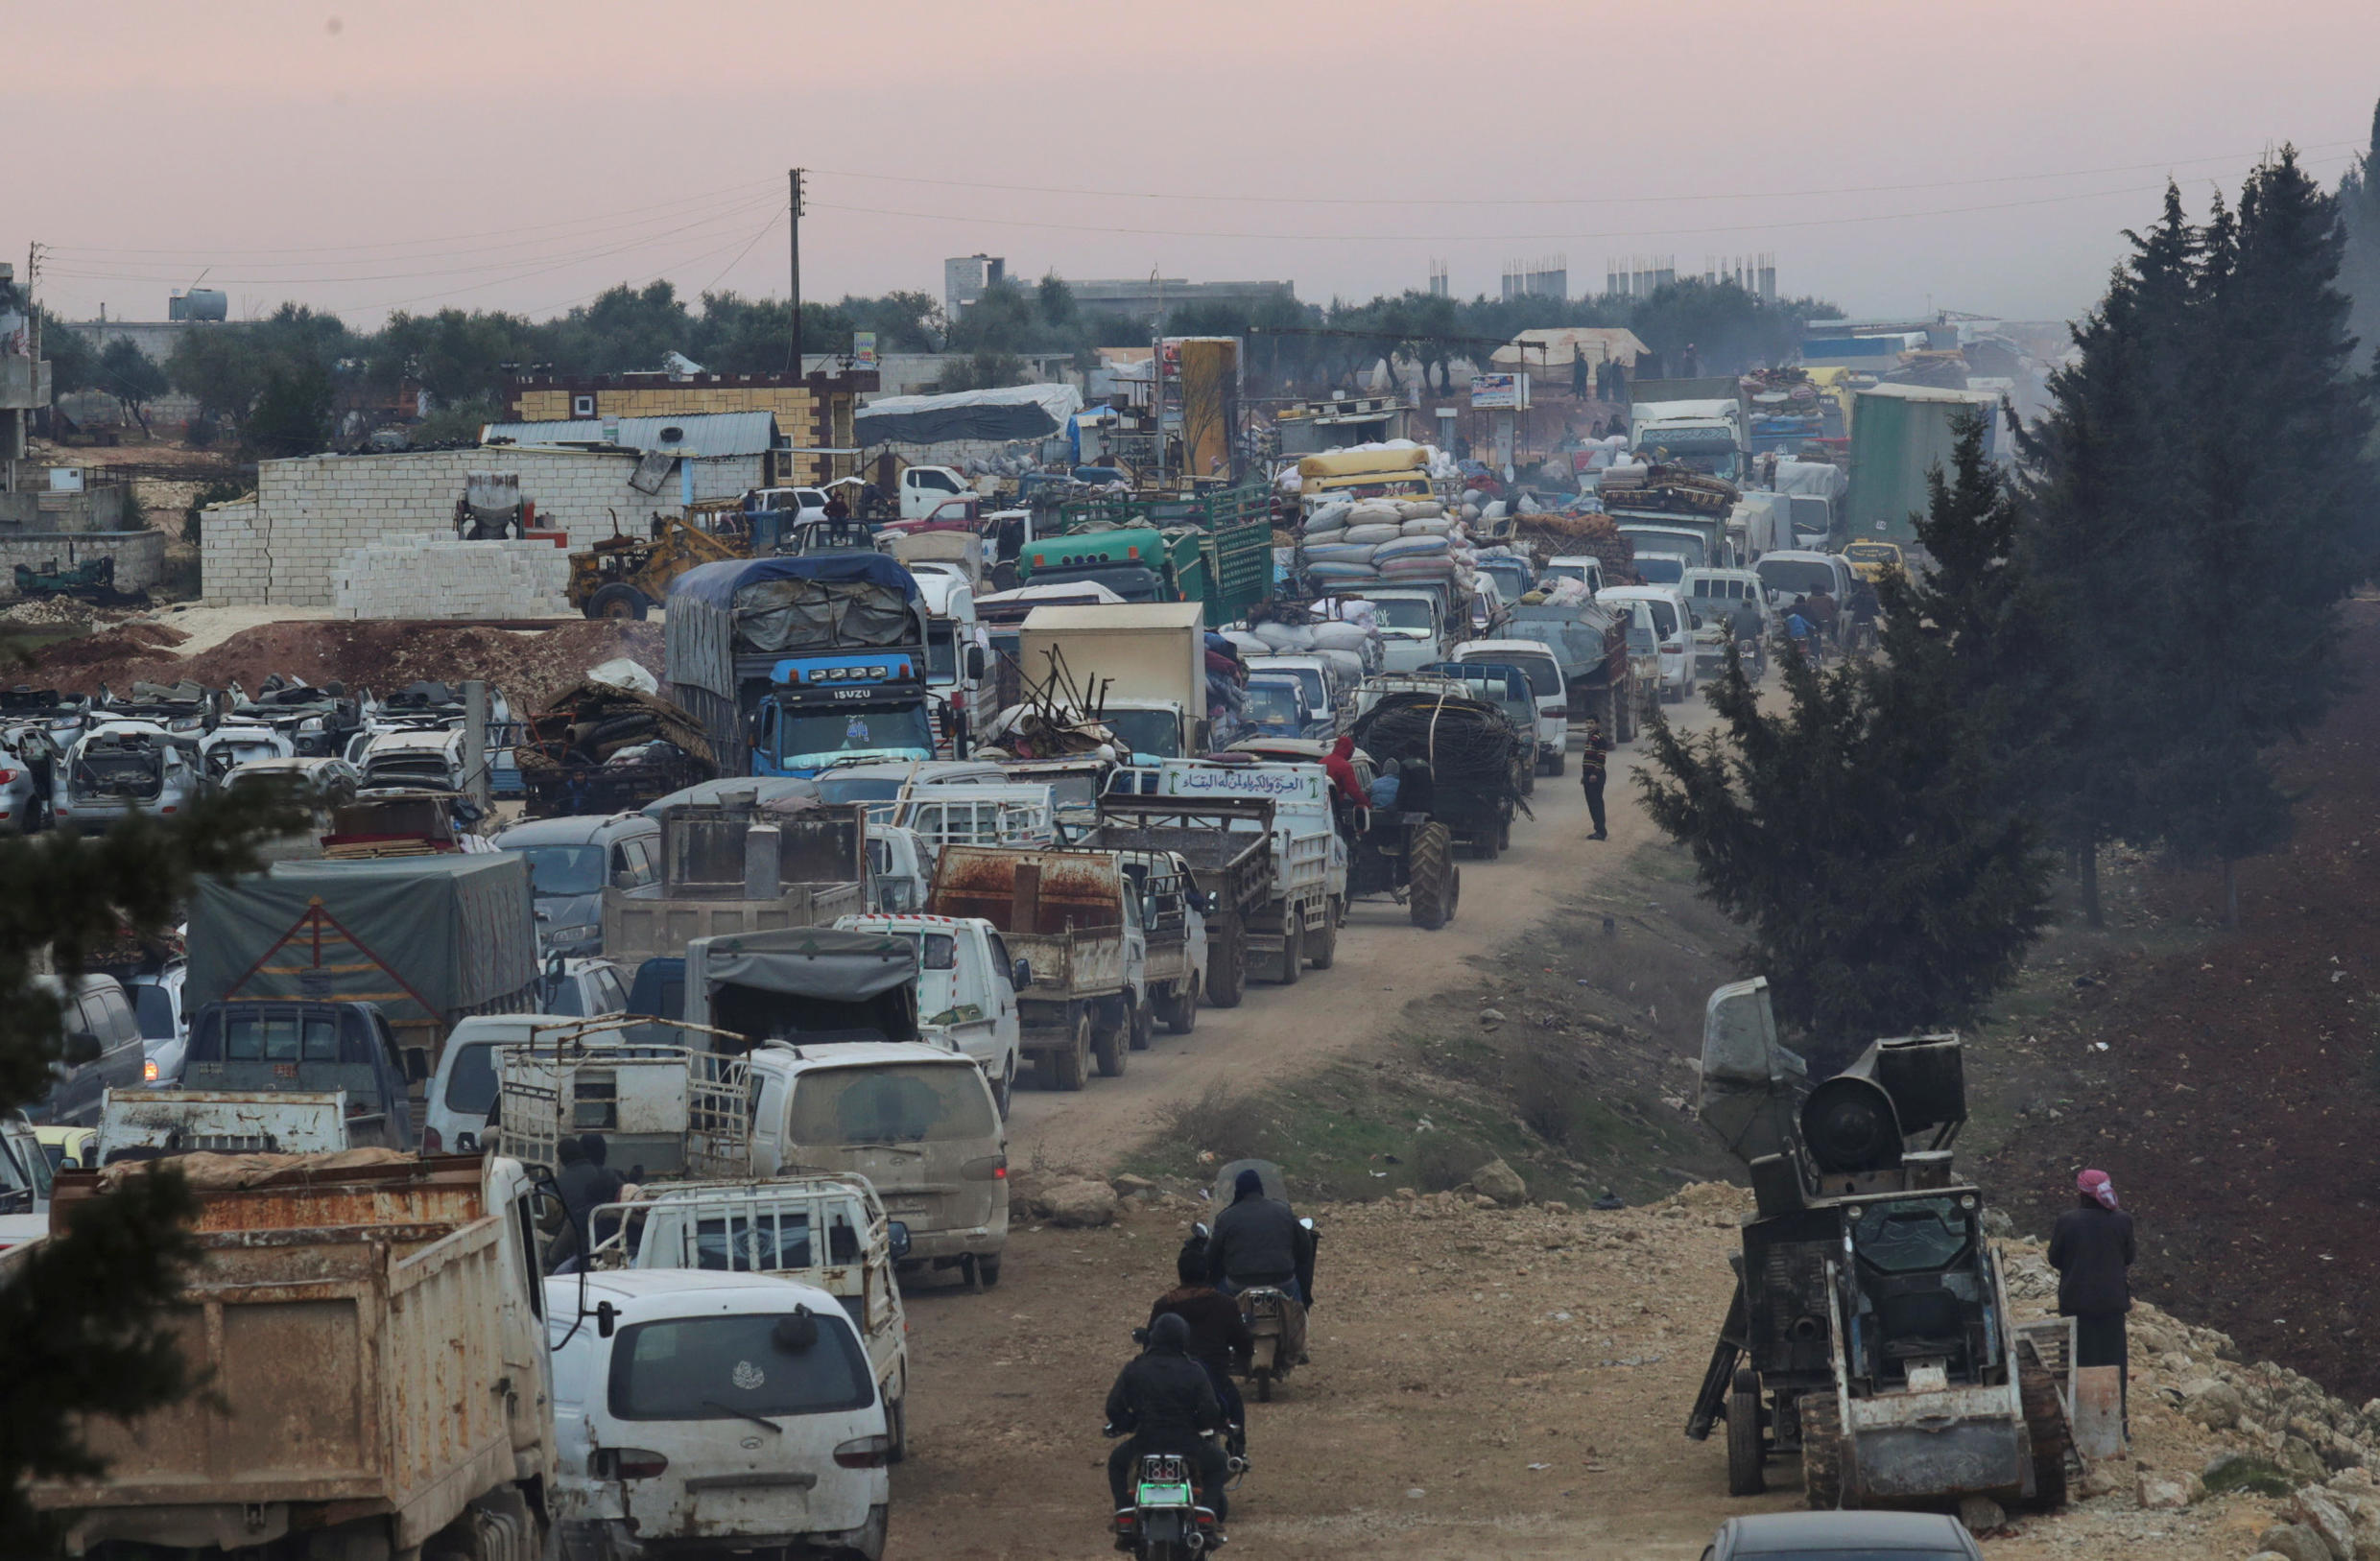 A general view of trucks carrying belongings of displaced Syrians, is pictured in the town of Sarmada in Idlib province, Syria, January 28, 2020.